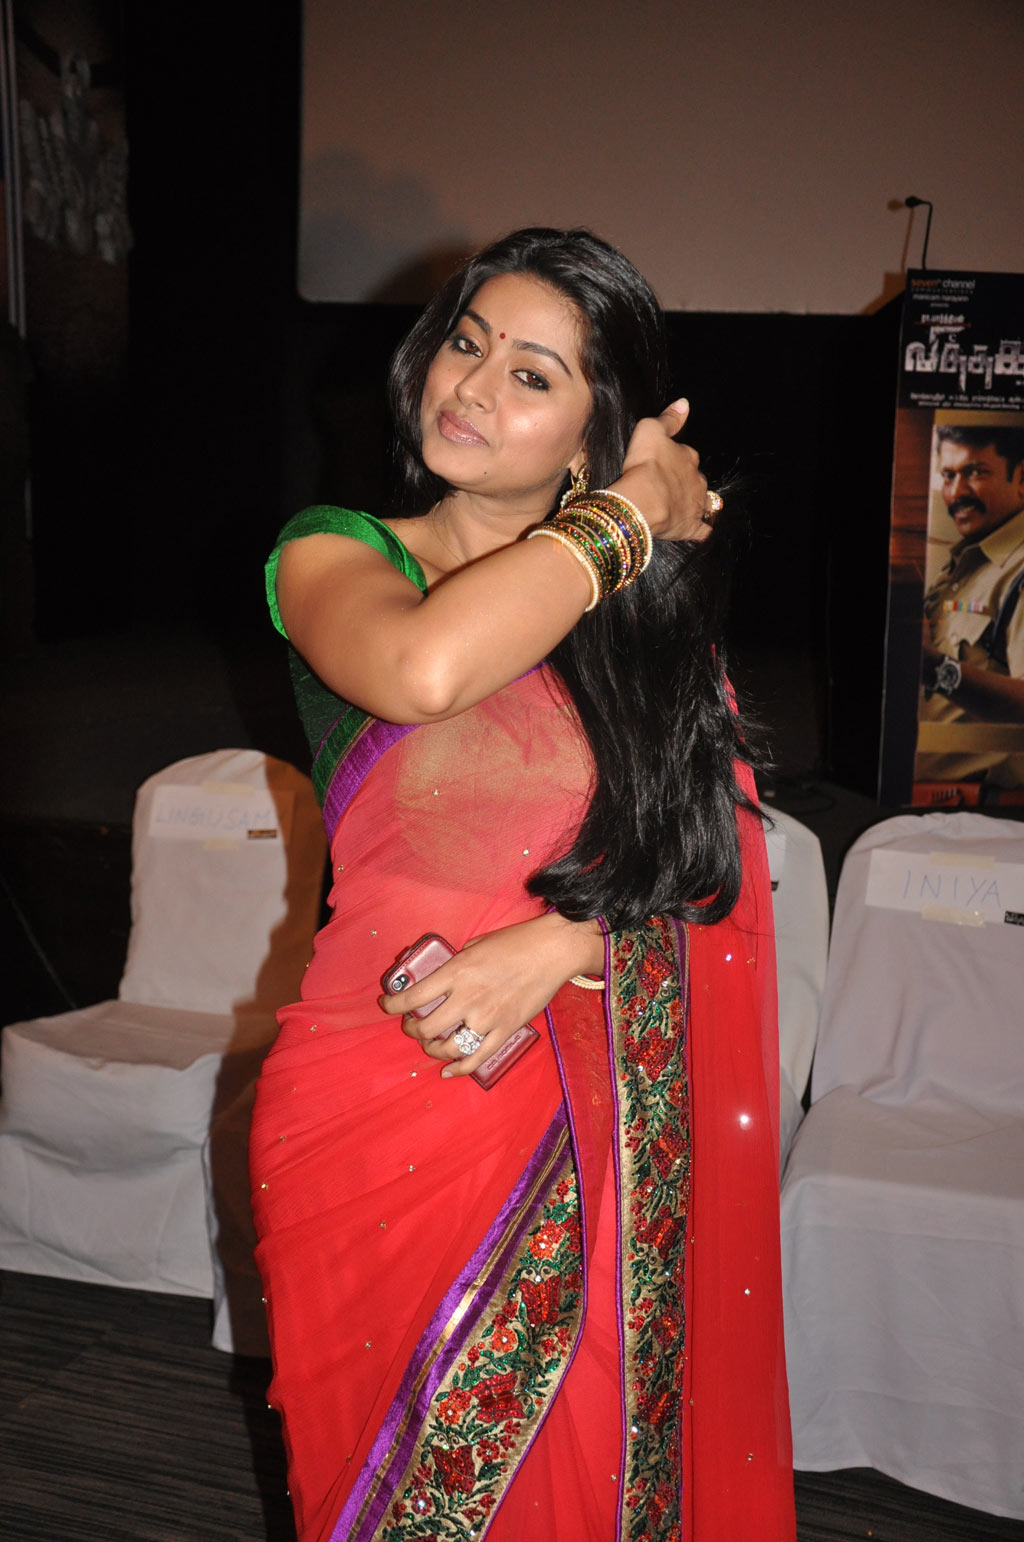 Sneha in a transparent bikini